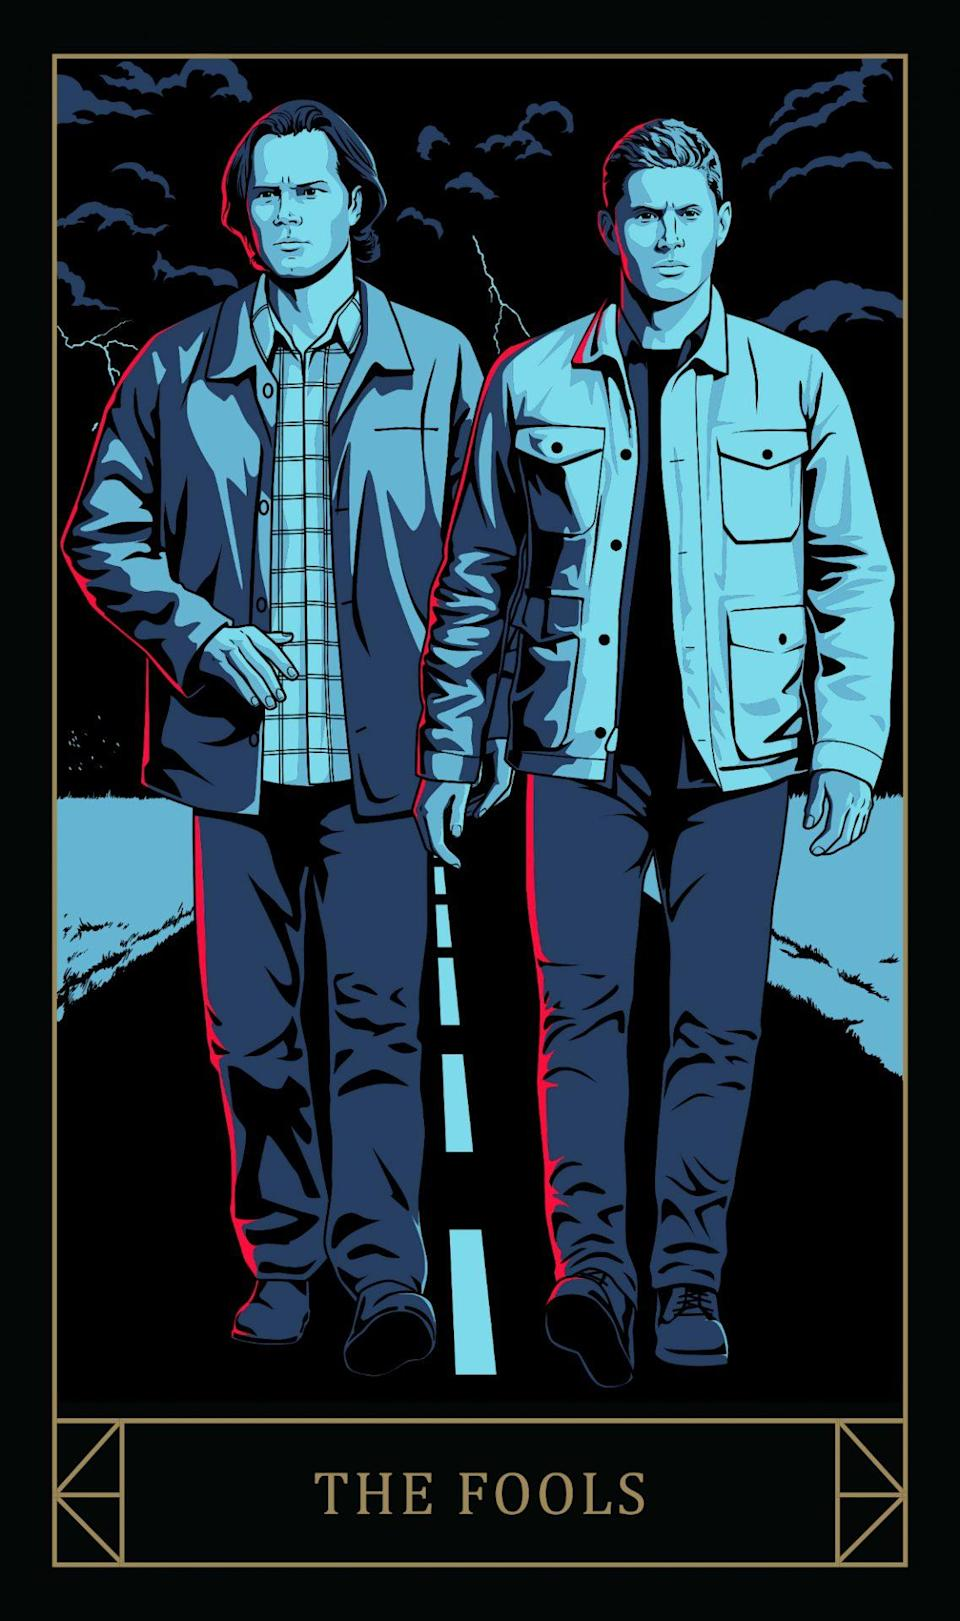 Sam and Dean Winchester on the Supernatural Fools tarot card